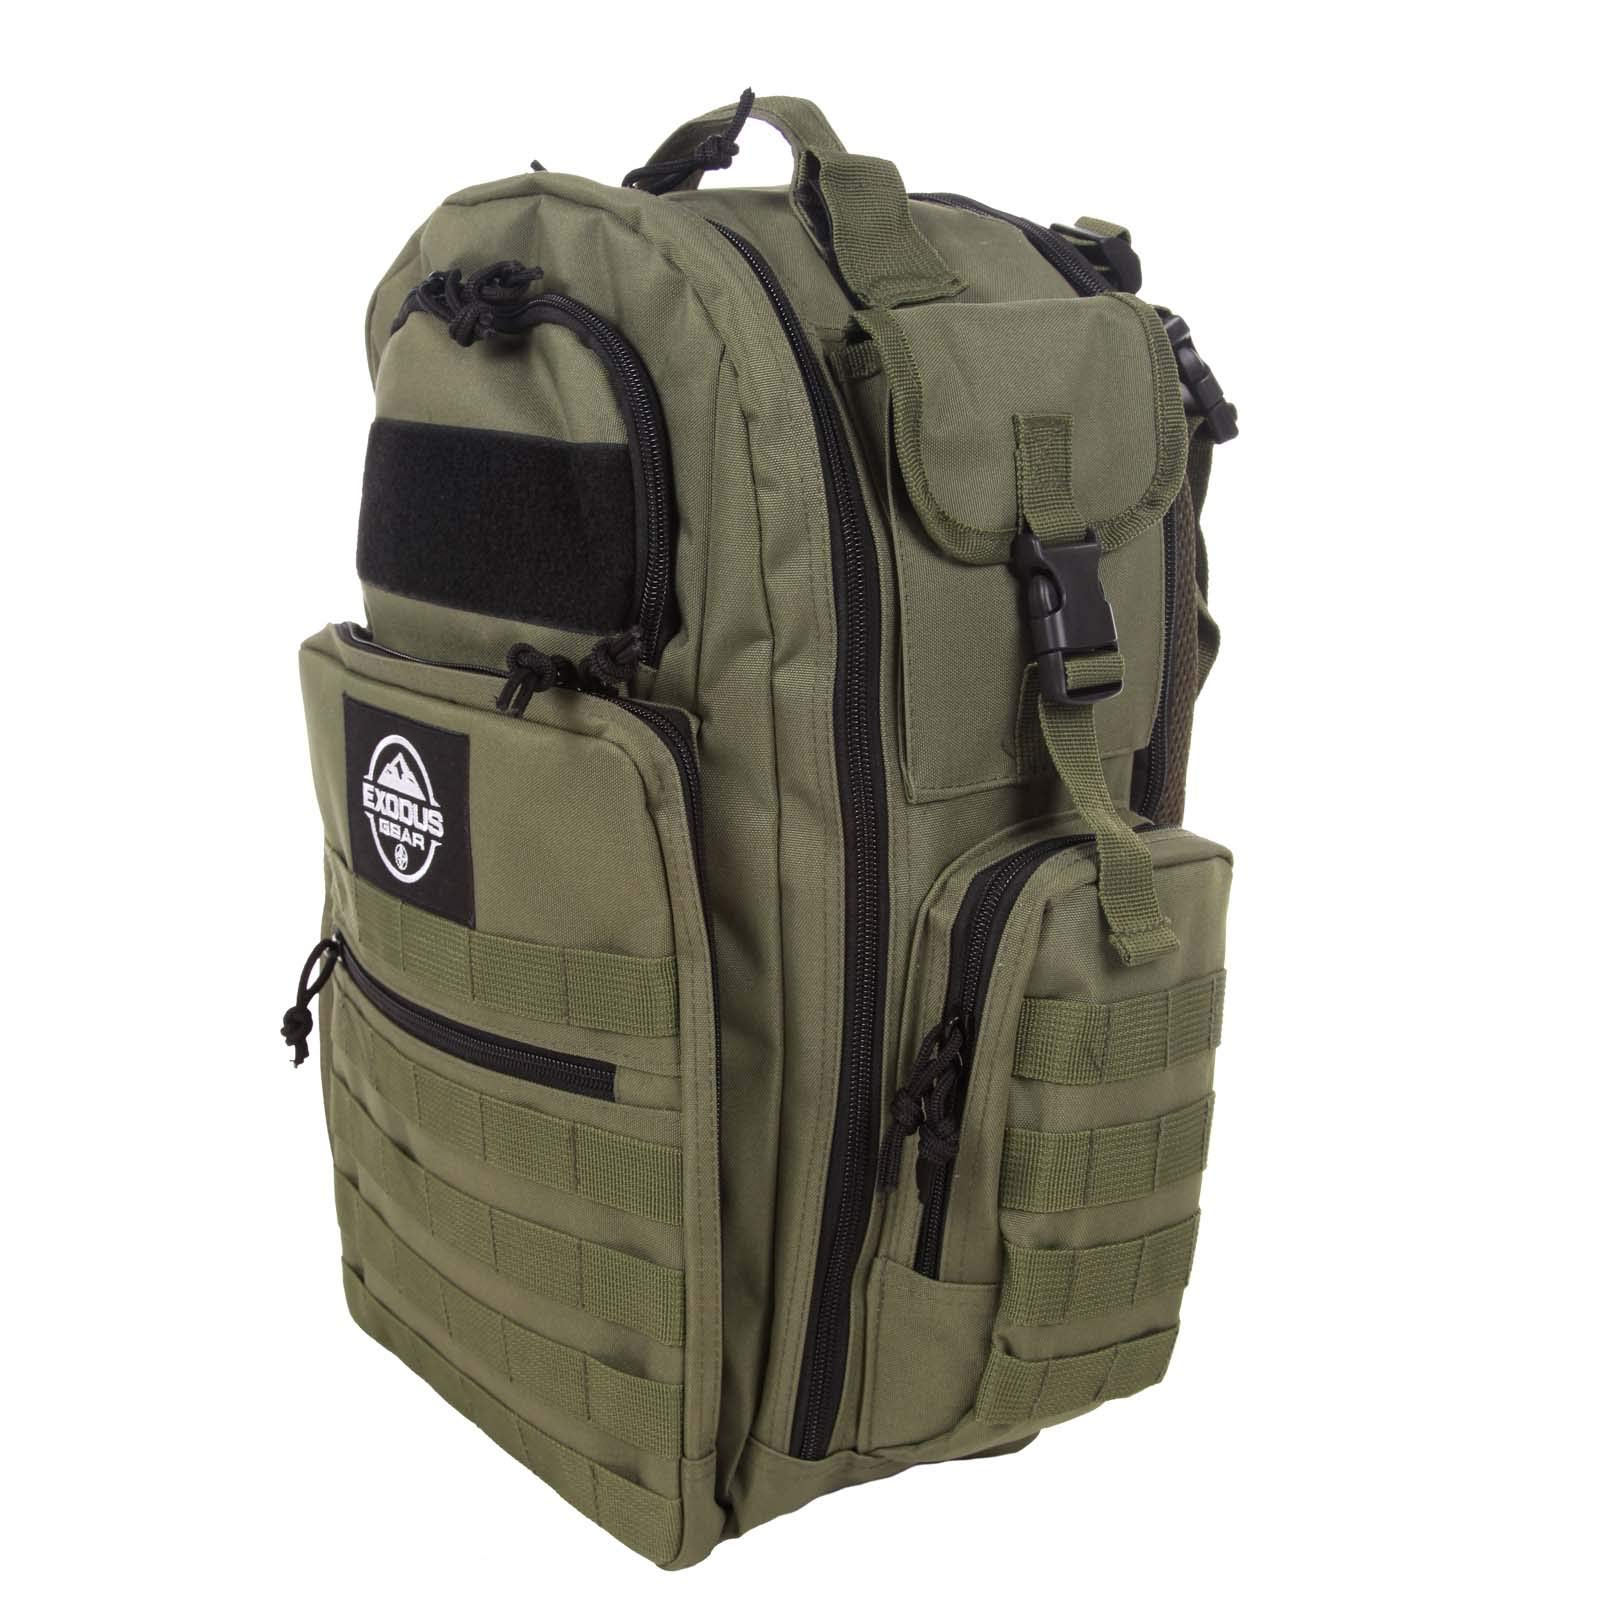 Diaper Bag Backpack by Exodus Gear + Adventure Diaper Bag with Changing Pad + Daddy Diaper Bag for Men and Woman + Hiking Diaper Bag + Dad Diaper Bag + Unisex Diaper Bag + Baby Care (Green) by Exodus Gear (Image #10)